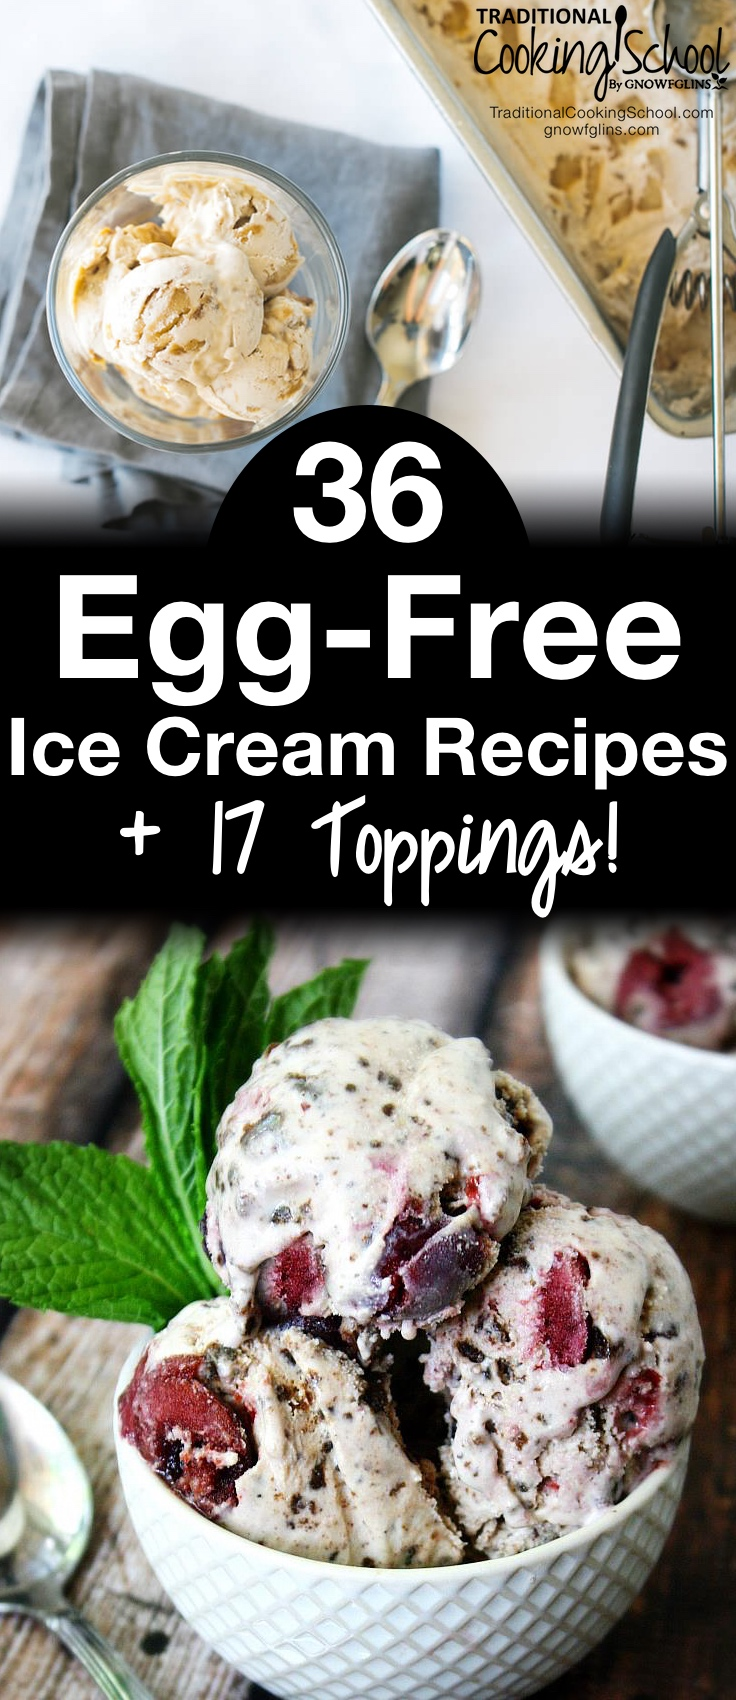 36 Egg-Free Ice Cream Recipes + 17 Toppings! | Besides some sort of milk and a sweetener, what do almost all ice cream recipes contain? Eggs. Your search for the perfect egg-free ice cream ends TODAY with this compilation of 36 delicious and nutritious egg-free ice cream recipes + 17 toppings! If spring has you dusting off your ice cream machines, get ready! Allergy-friendly ice cream has never looked (or tasted) soooooo good! | TraditionalCookingSchool.com